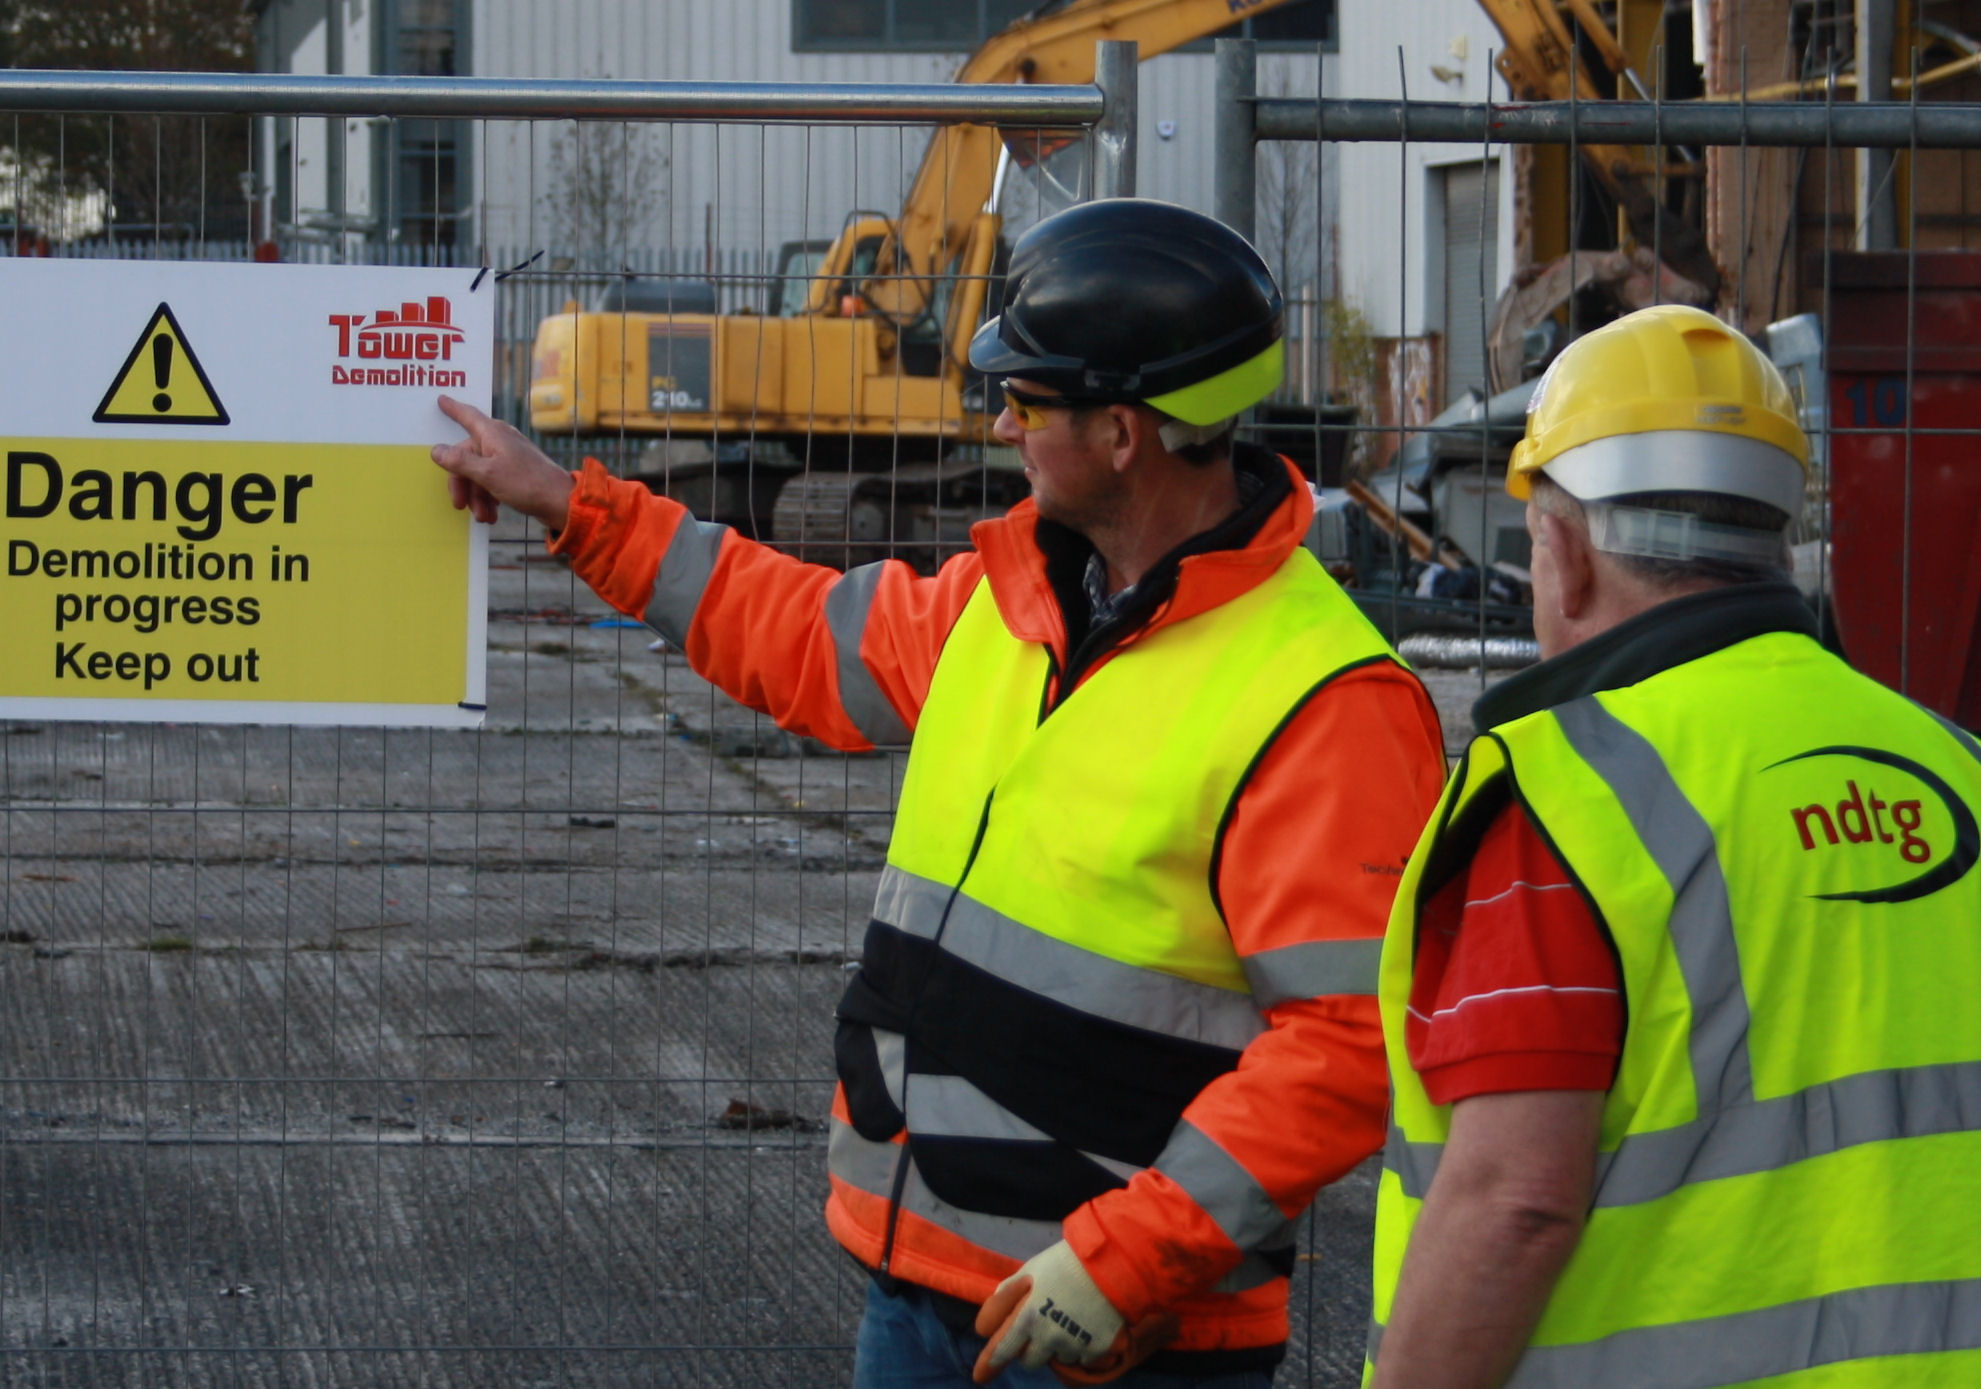 Tower Demolition Resources & Downloads